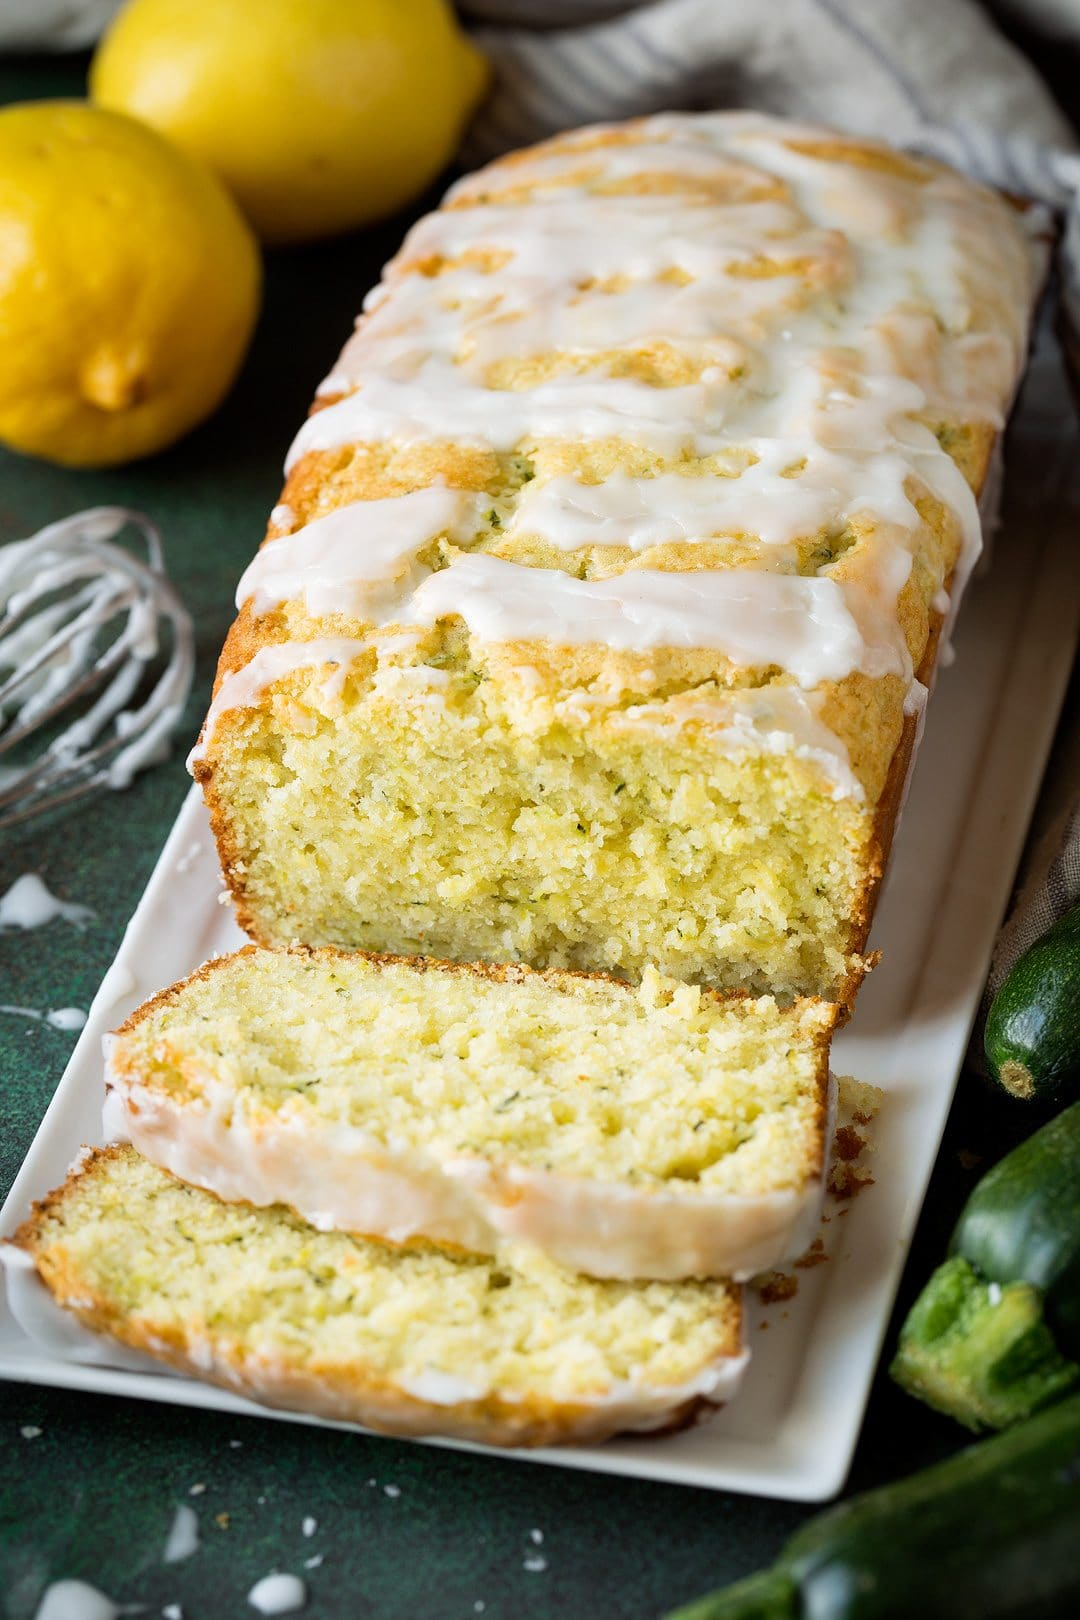 Lemon Zucchini Bread on a rectangular white serving dish. Two slices are cut from the loaf and laying in front to show inside of loaf.